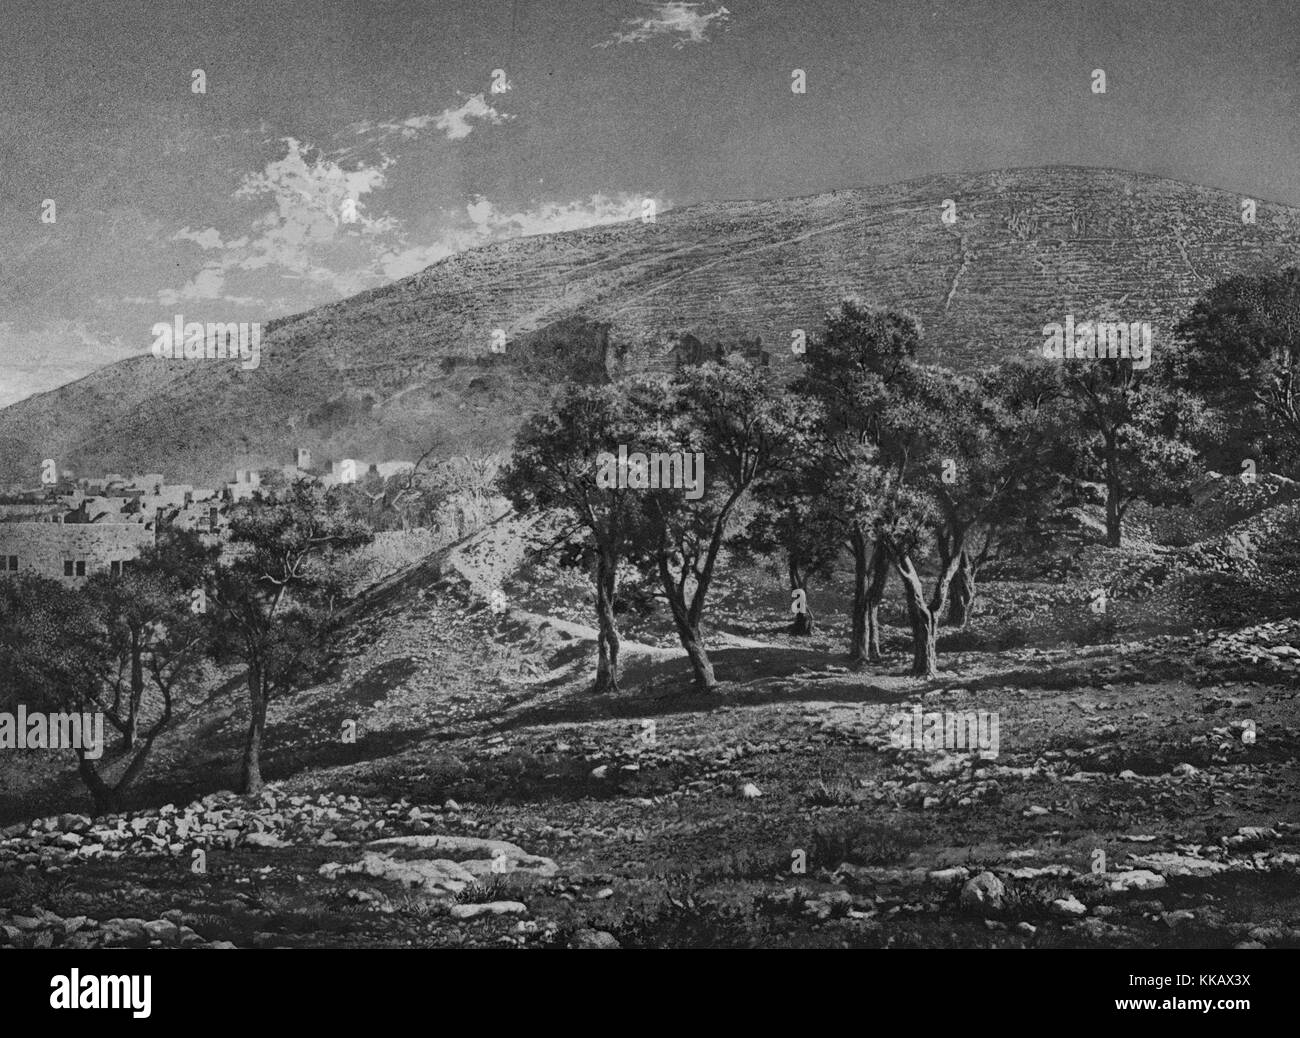 Black and white photograph with rocks and trees in the foreground, hills and ancient settlement in the background, - Stock Image